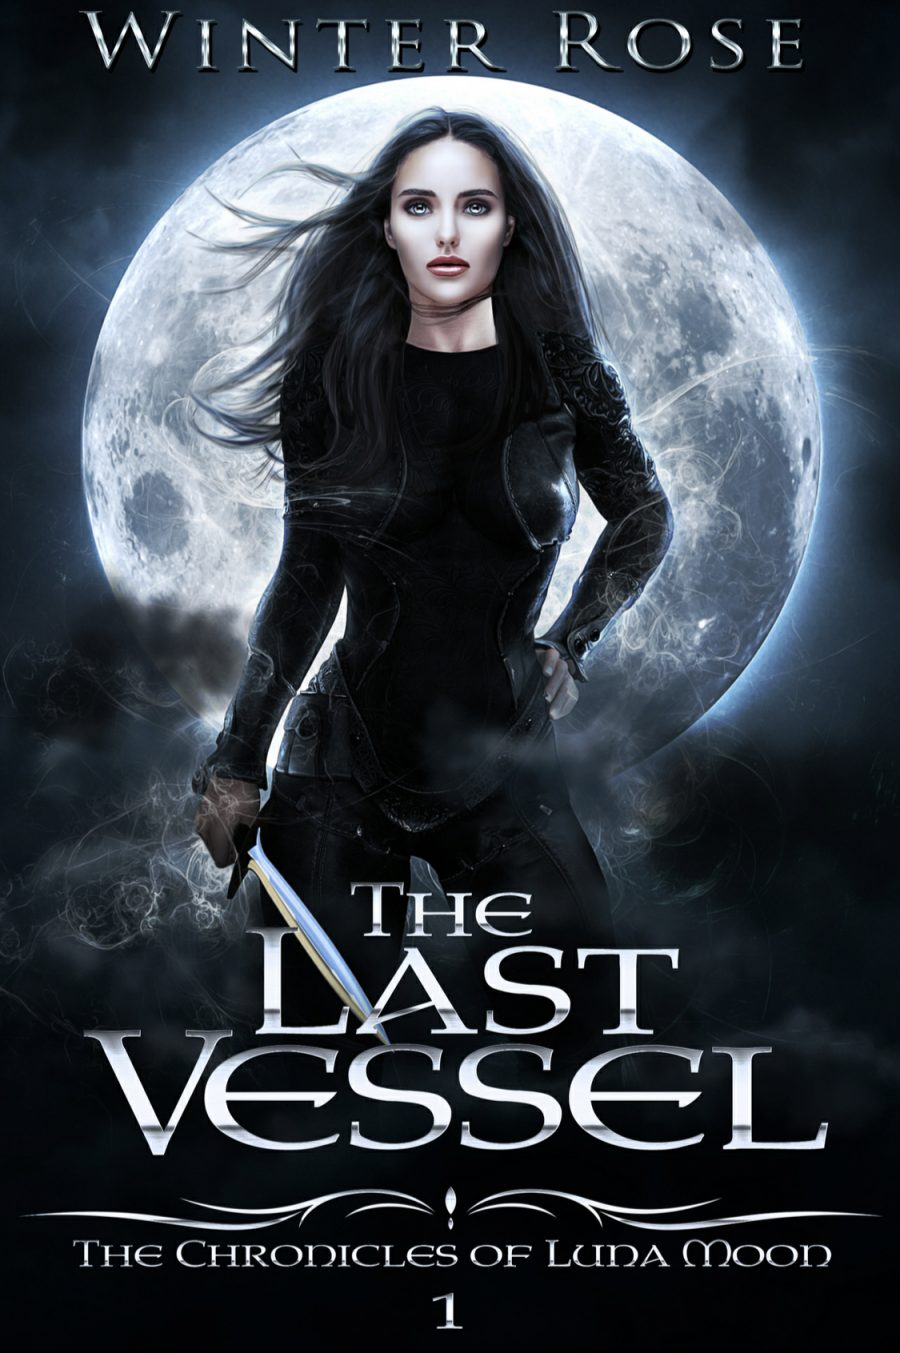 The Last Vessel by Winter Rose - A Book Review #BookReview #PNR #ReverseHarem #RH #Whychoose #MediumBurn #Fantasy #KindleUnlimited #KU